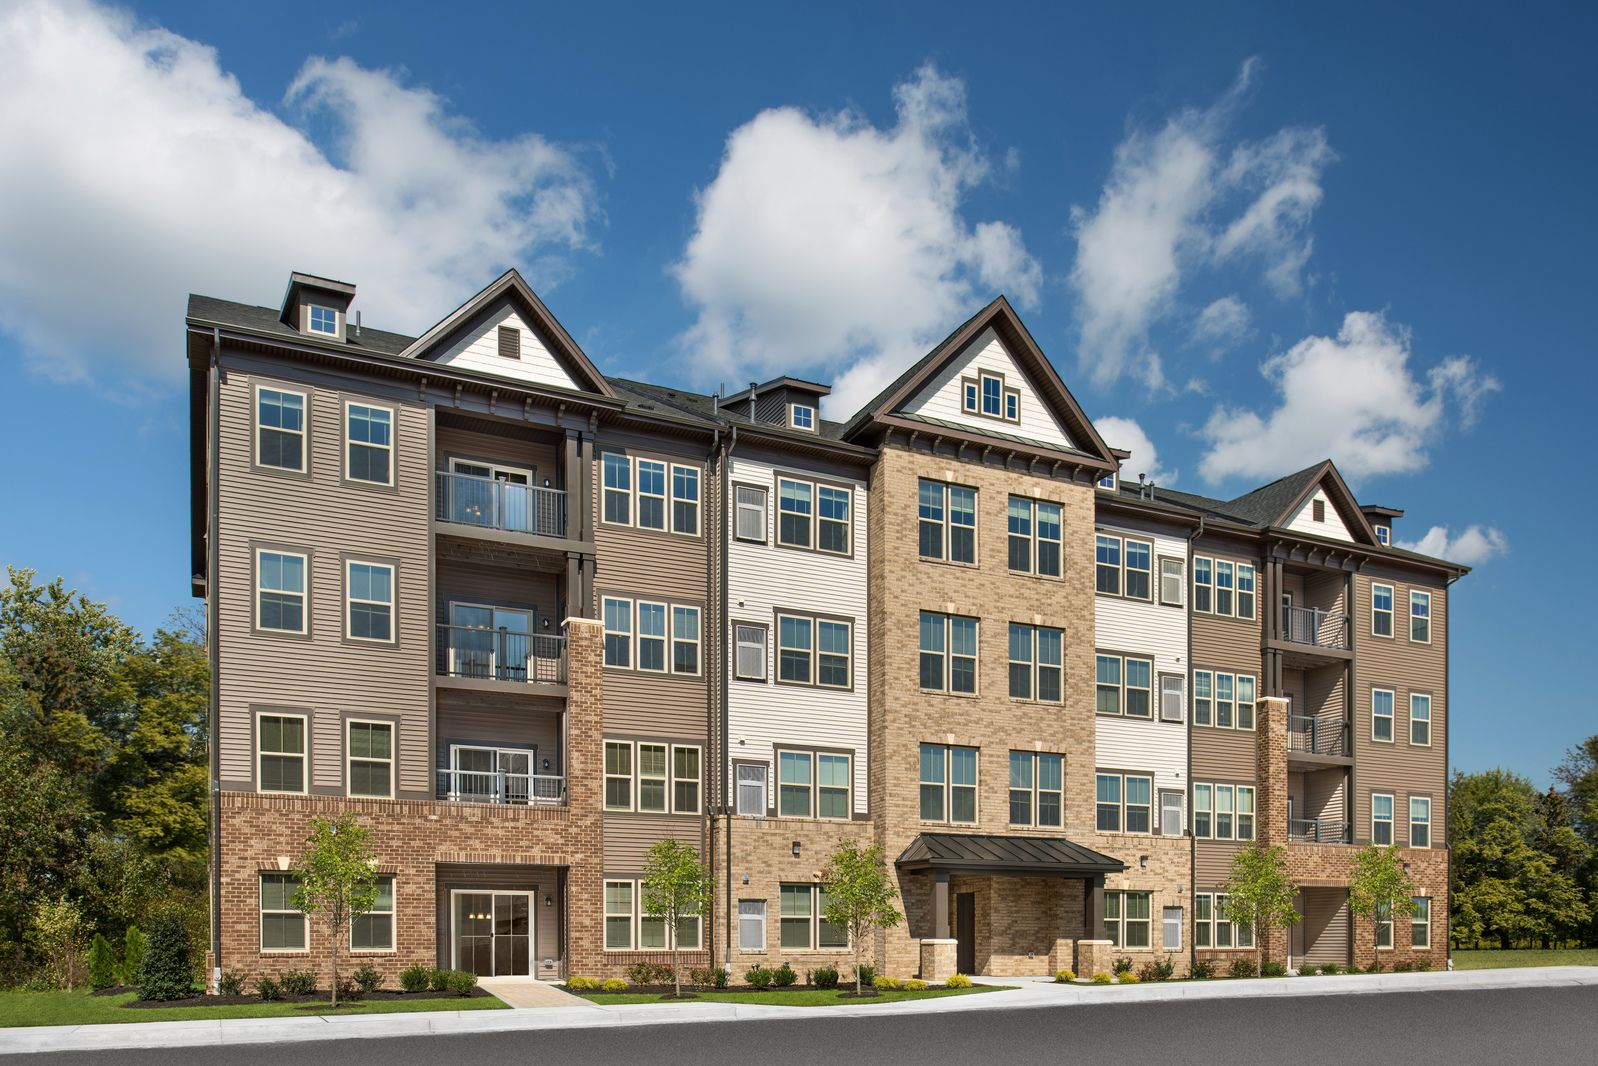 Welcome to the Elevator Condos at Paddock Pointe:Our newest Howard County community is now open!Schedule your visit today to own a brand new condo from the low $300s!